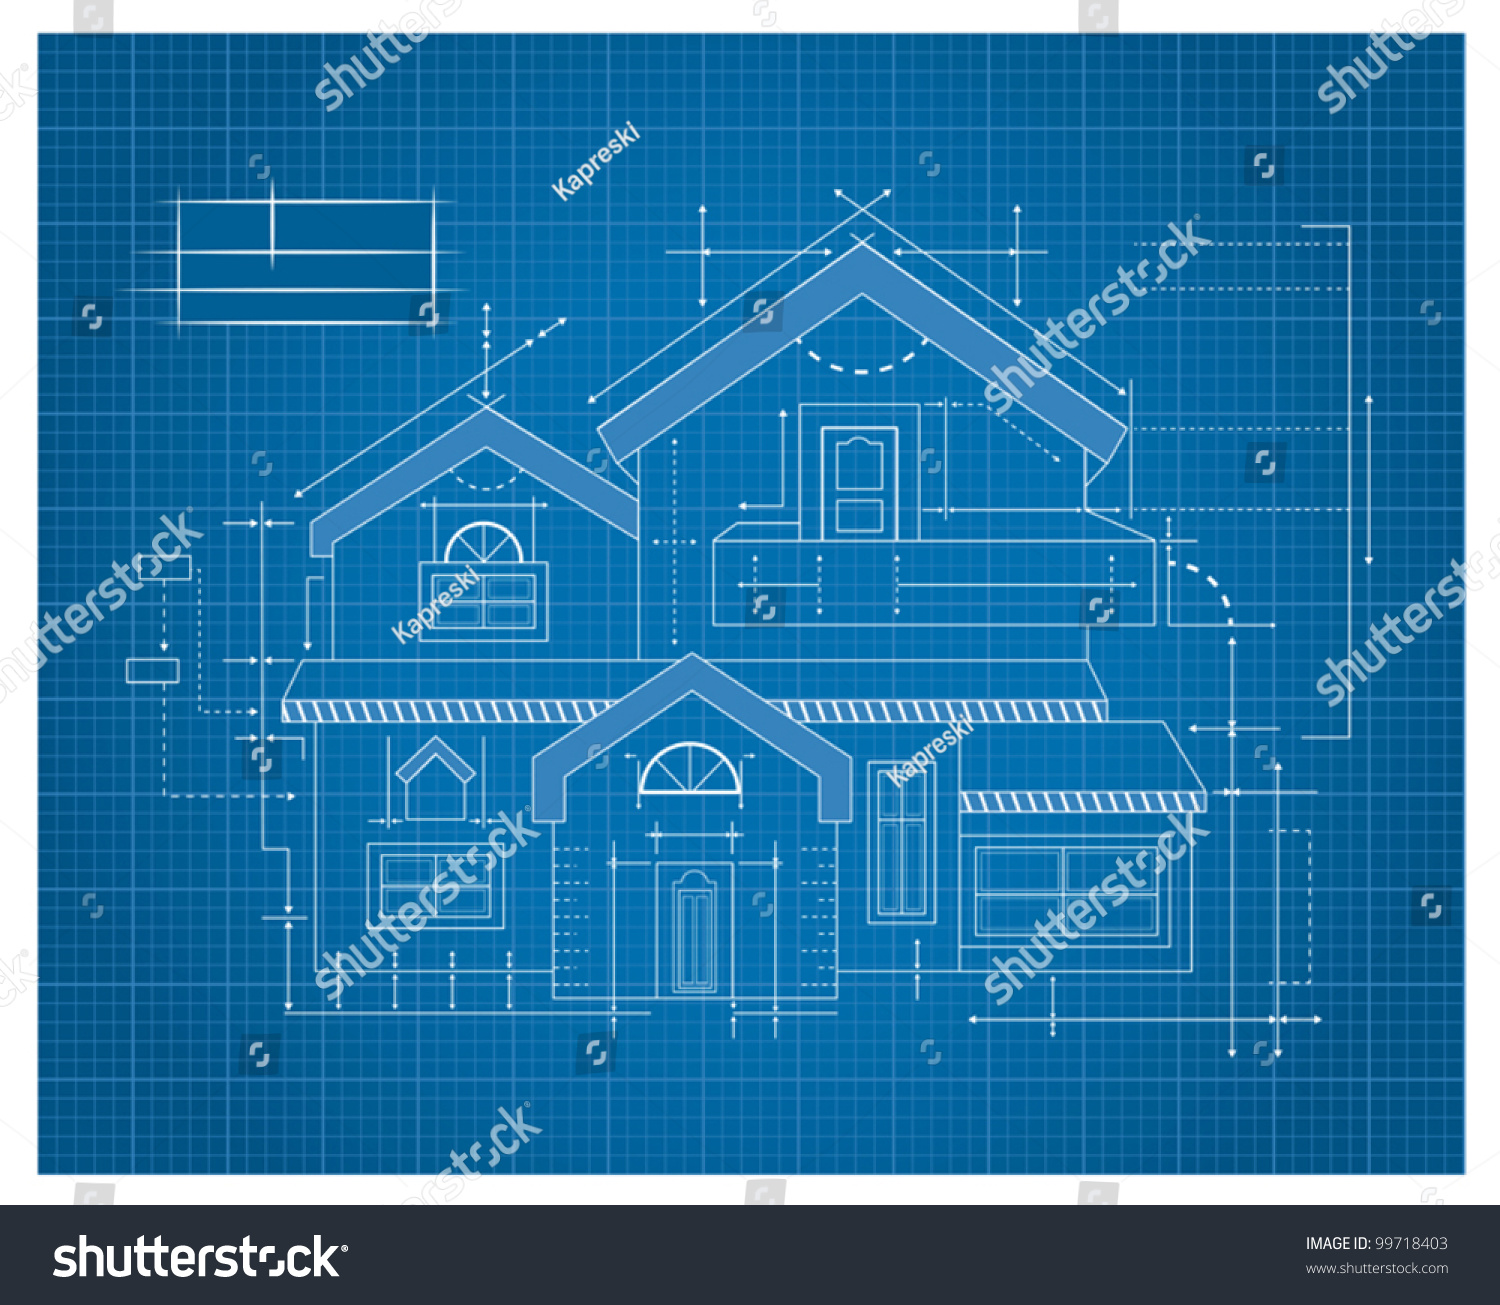 Modern house blueprint stock vector 99718403 shutterstock Blueprints for my house